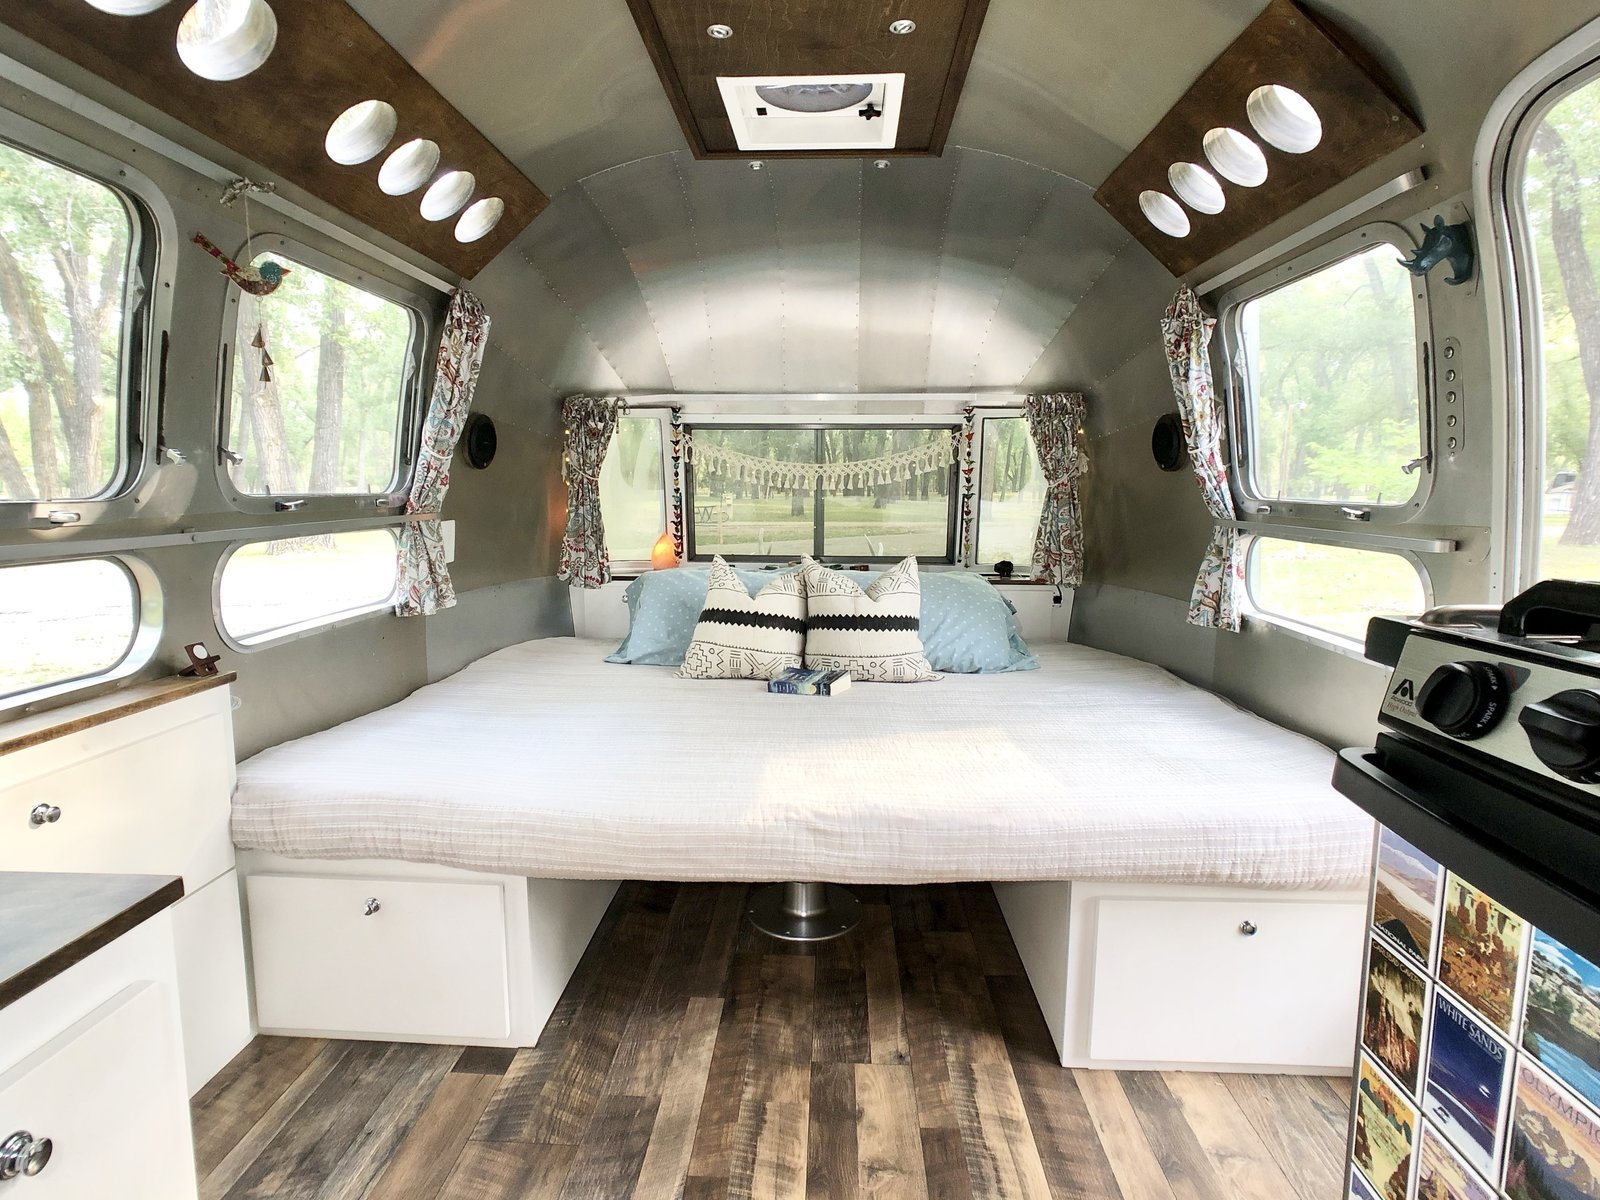 Bedroom, Medium Hardwood Floor, Storage, and Bed The dinette space can completely transform into an almost king-size bed.    Photo 9 of 12 in A 1970s Airstream Is Revamped Into an Off-Grid Home For Six from 1972 Vintage Airstream Trailer